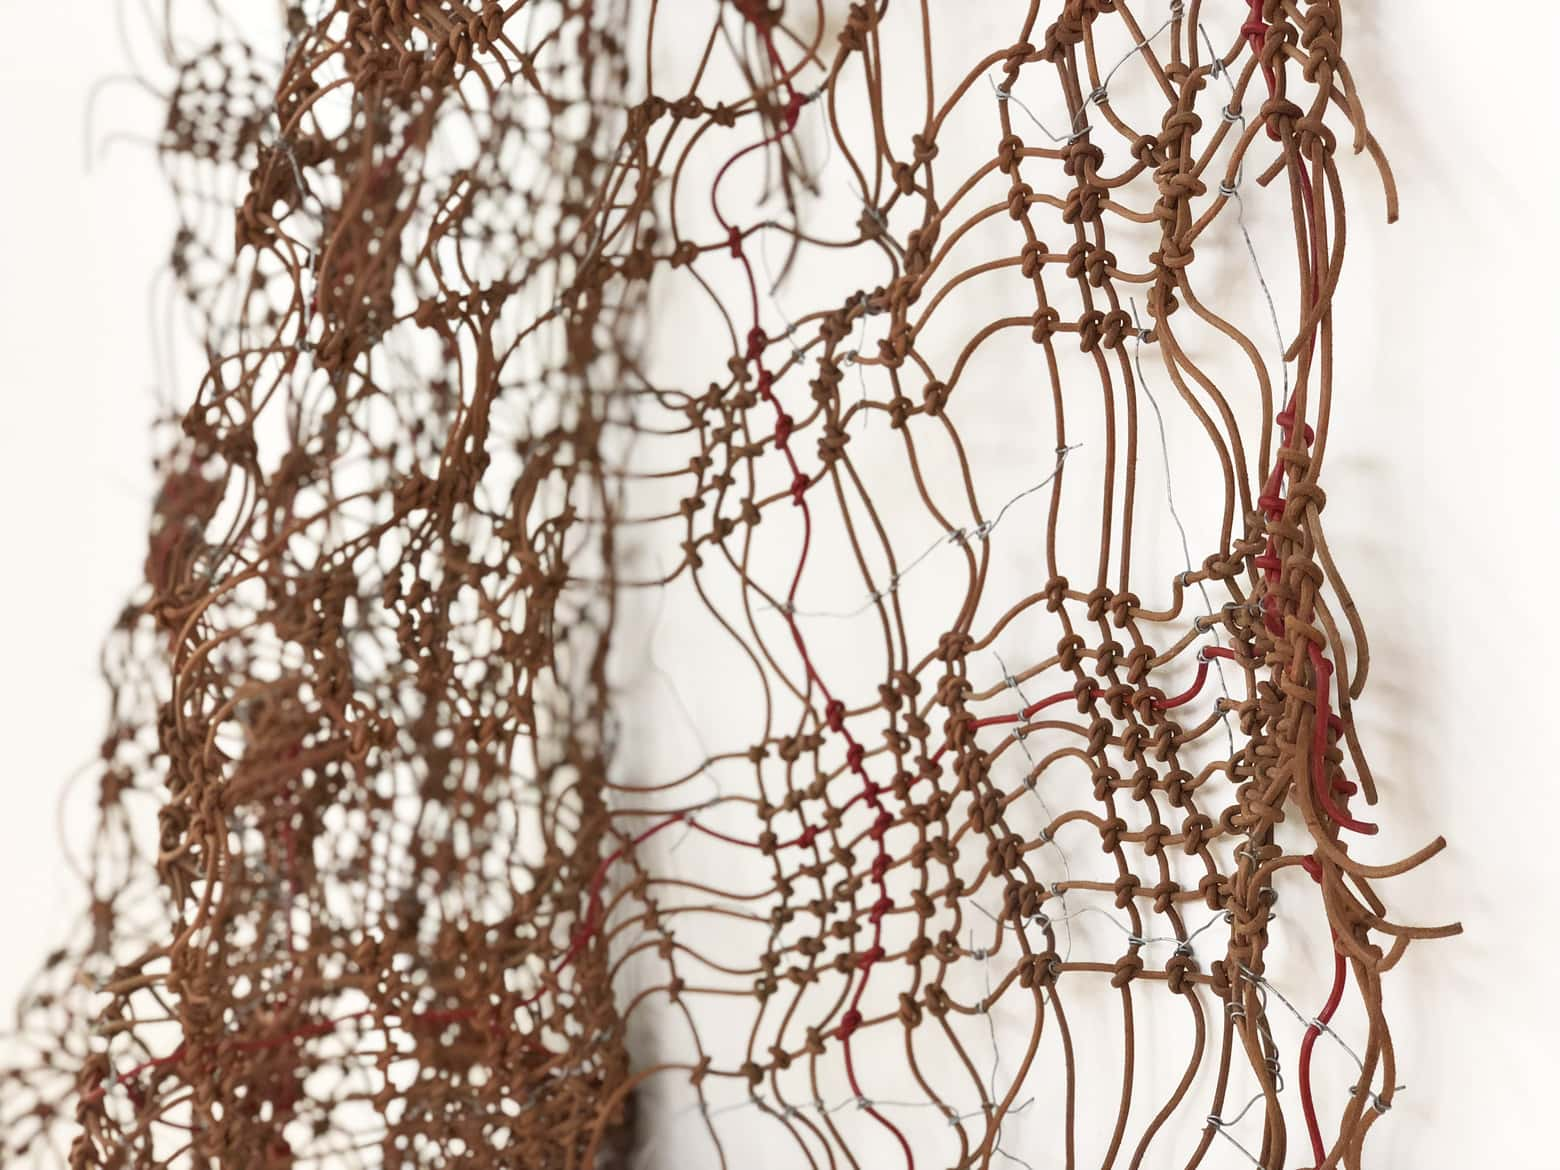 Dani Marti, 'Hanging with no title', 2008-2019, leather and steel wire, 220 x 140 cm